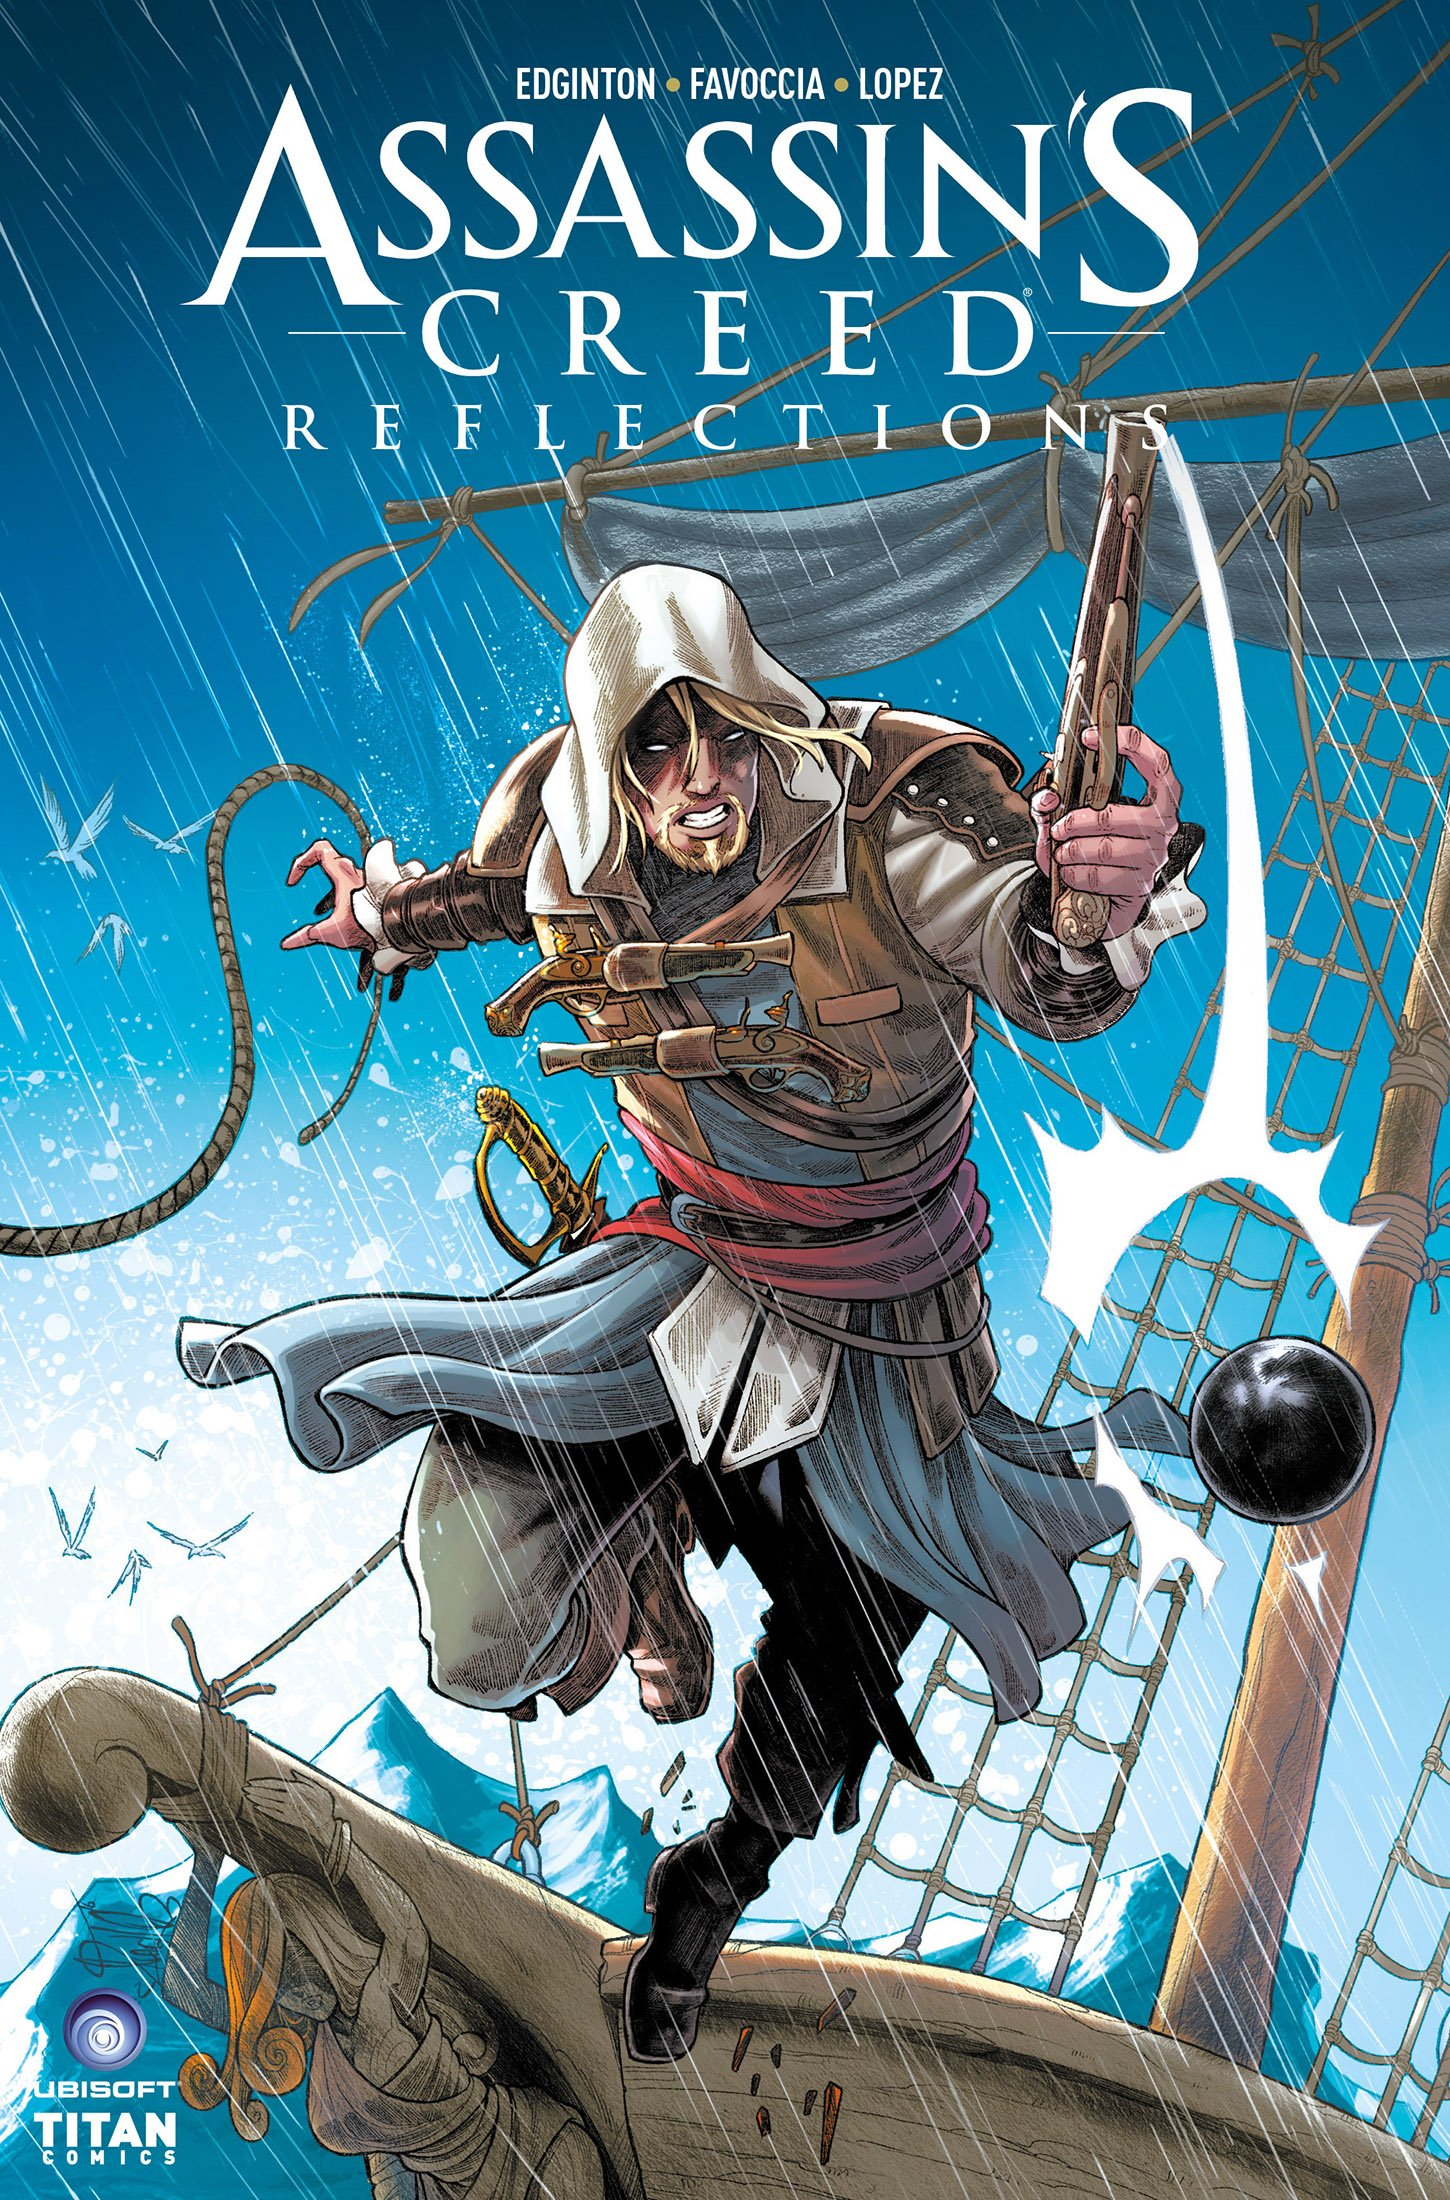 Assassin's Creed - Reflections 03 (June 2017) (cover b)